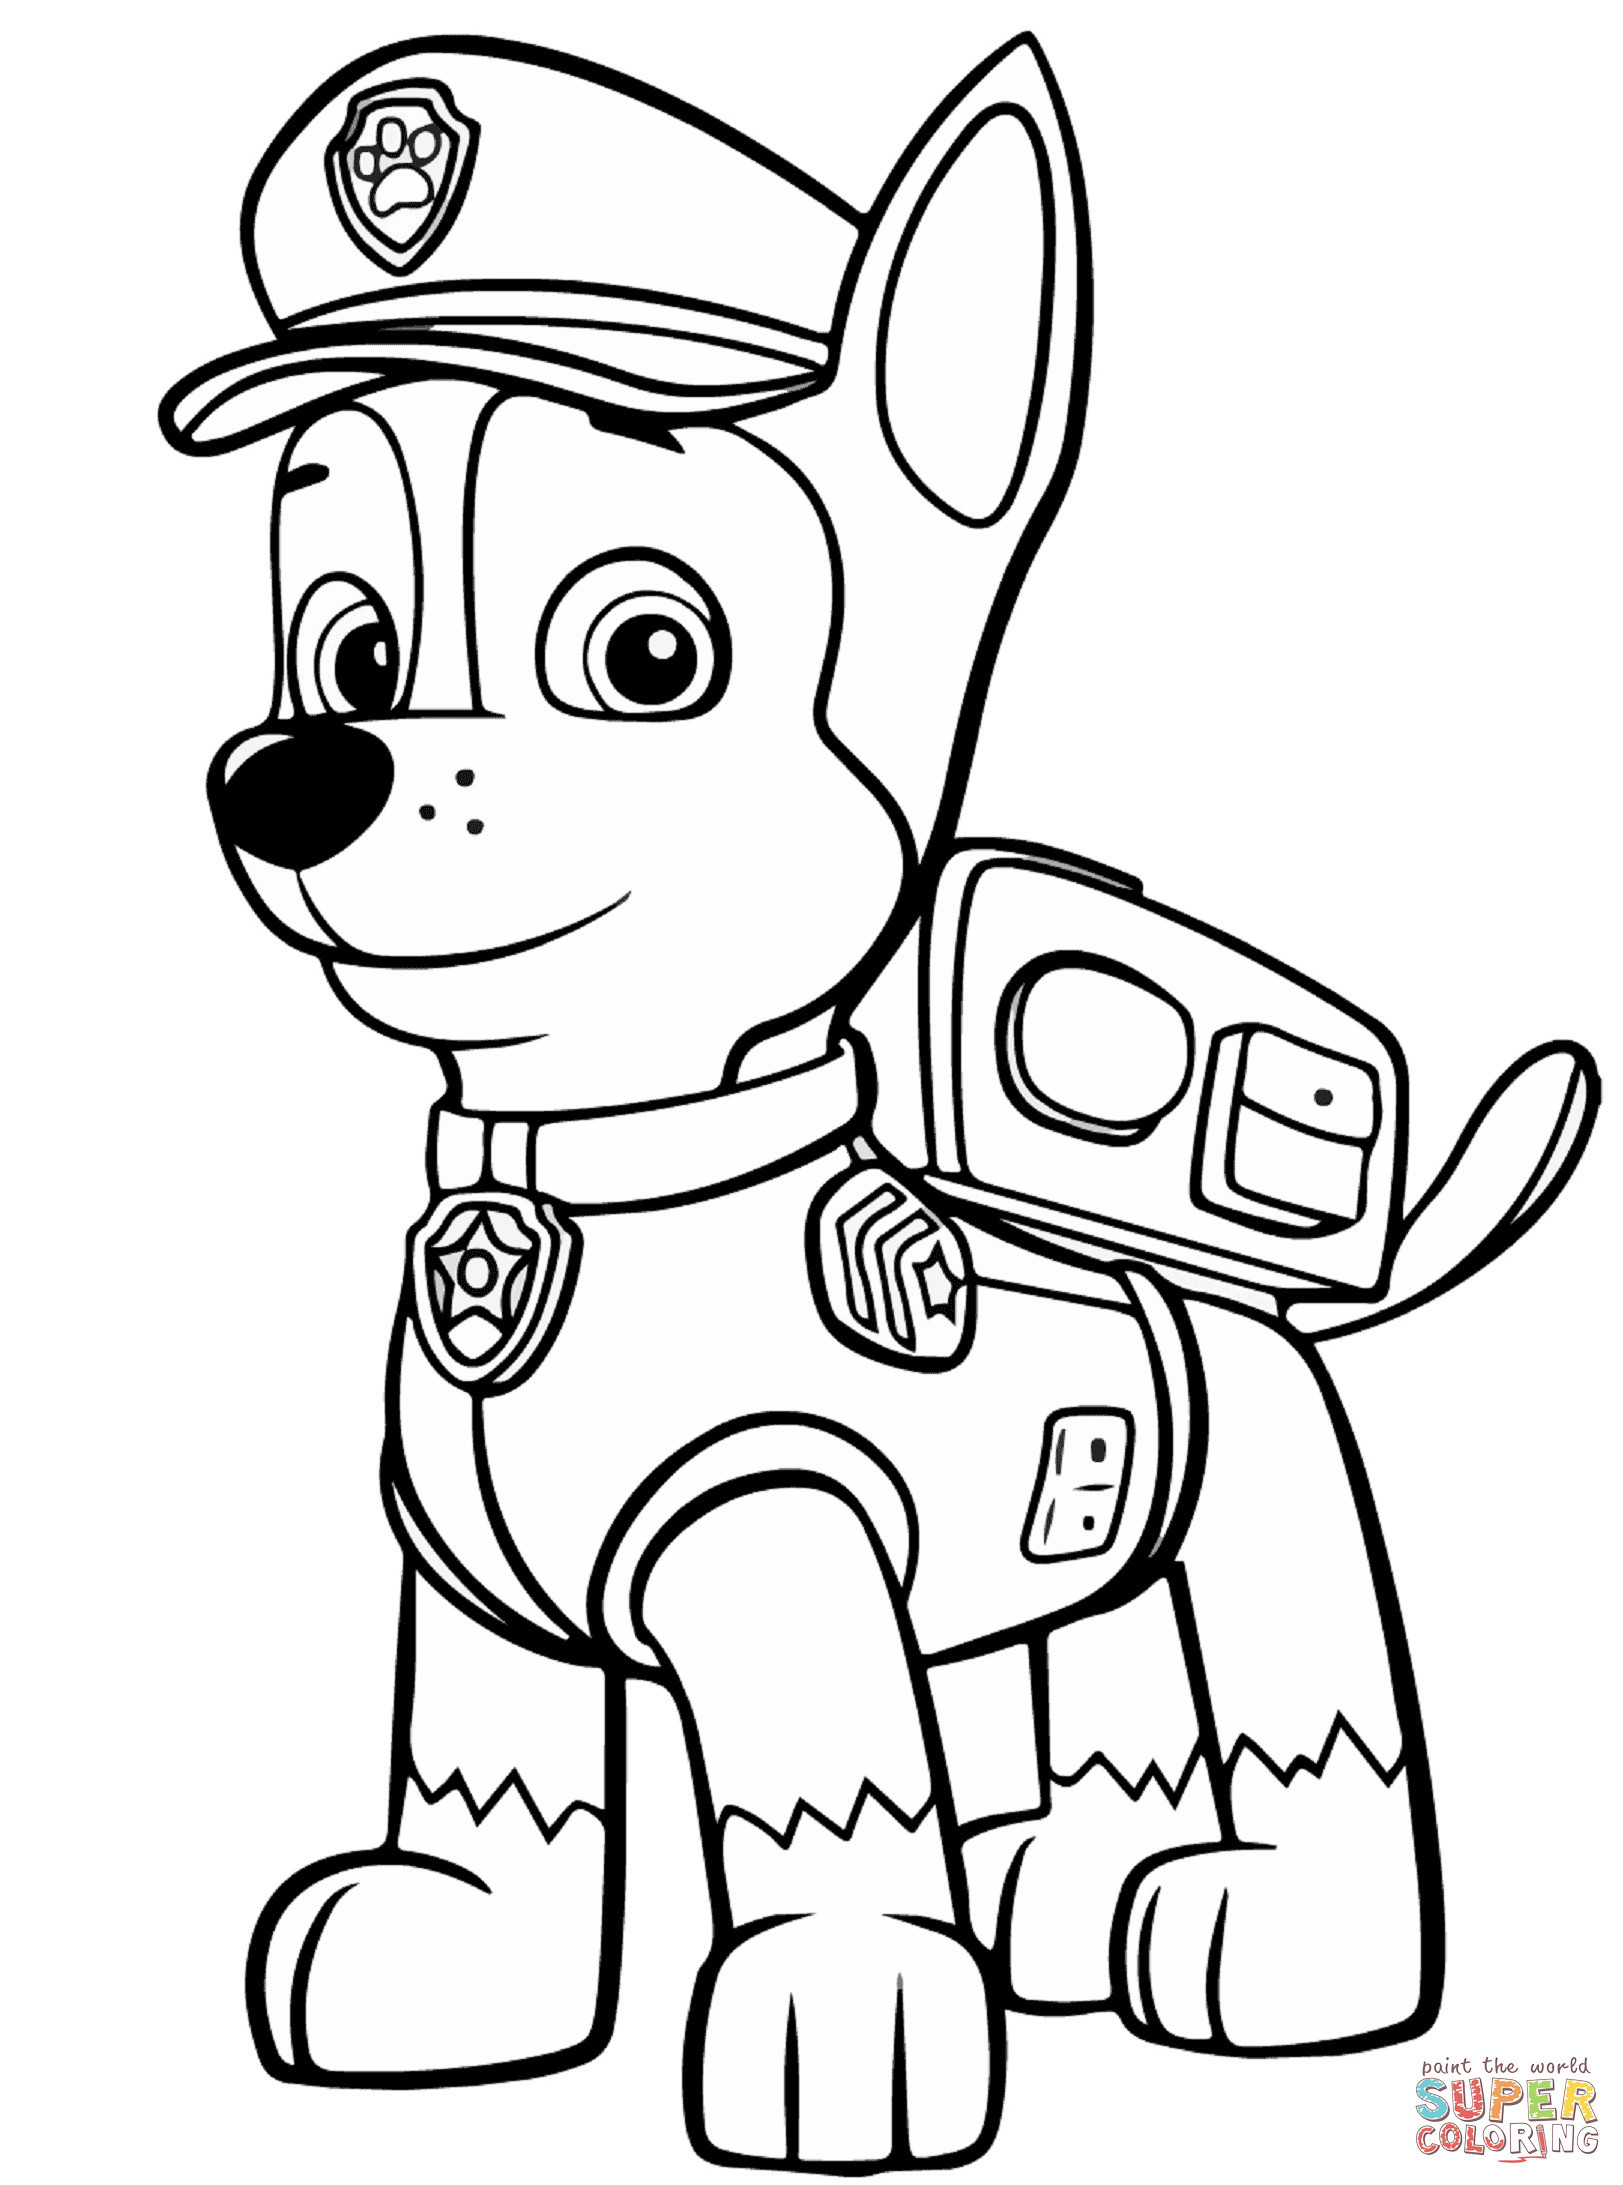 Malvorlage Paw Patrol Genial Lovely Paw Patrol Printable Coloring Pages Coloring Pages Bilder